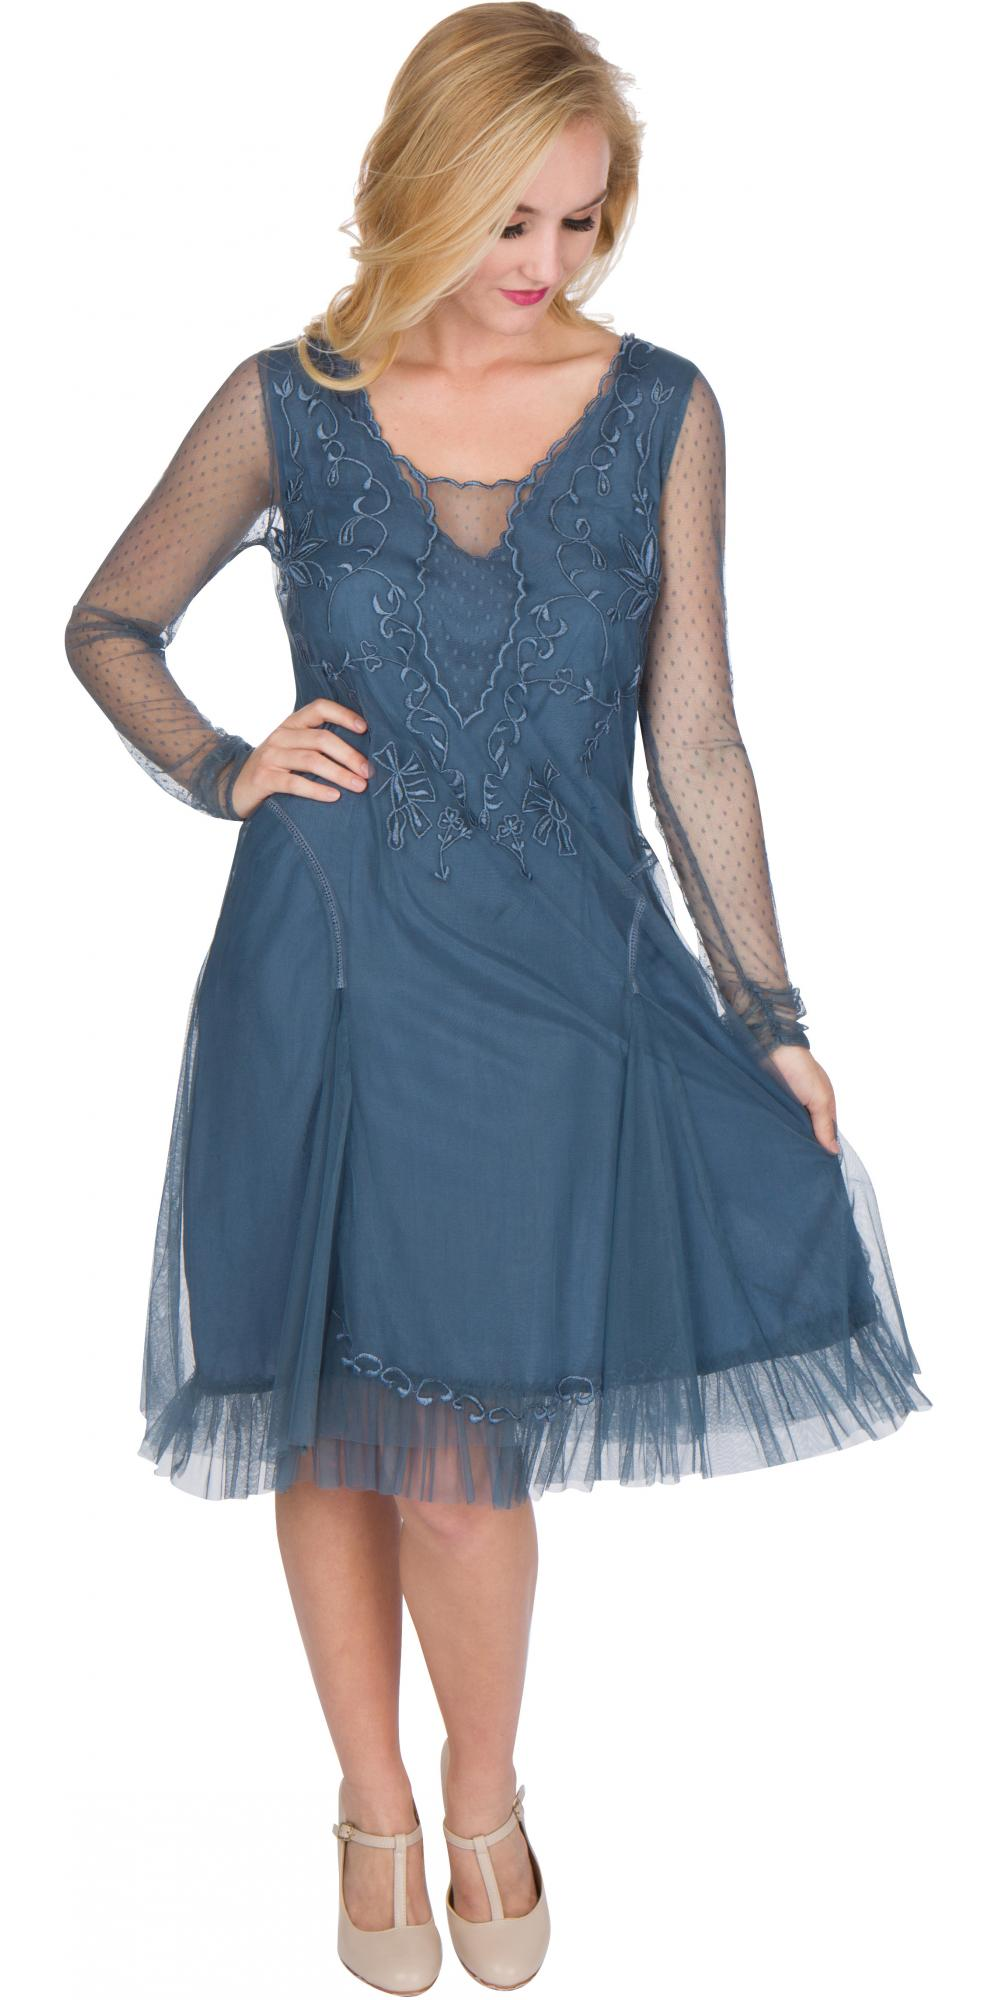 Age of Love Nataya AL-252 Party Dress in Sapphire